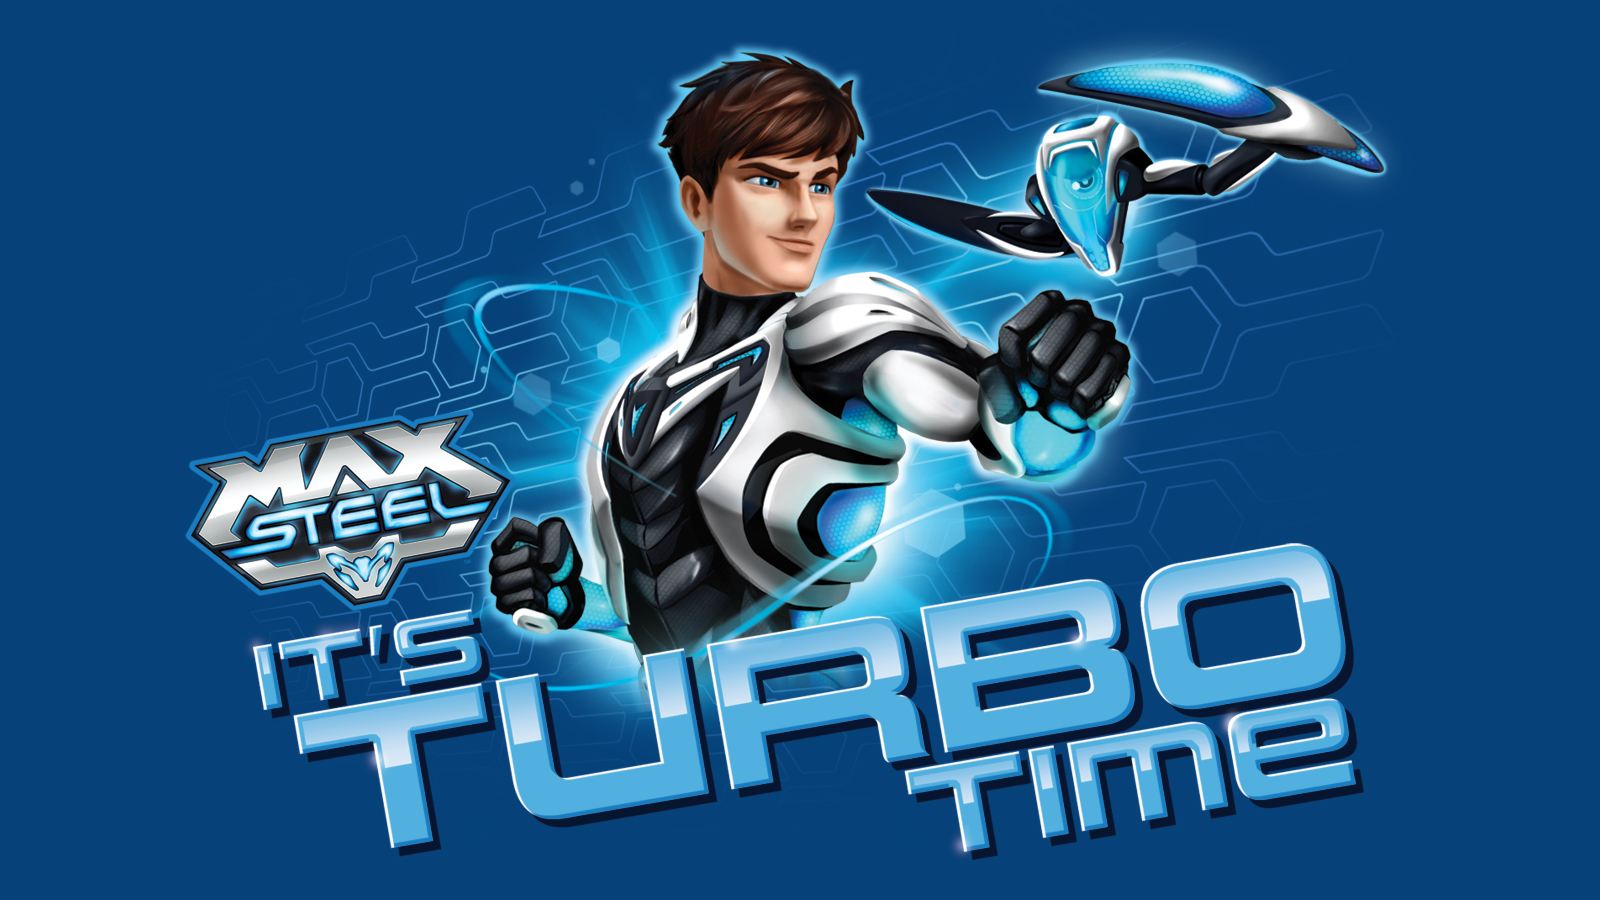 Max steel clipart svg free library Max Steel Wallpapers - Wallpaper Cave svg free library